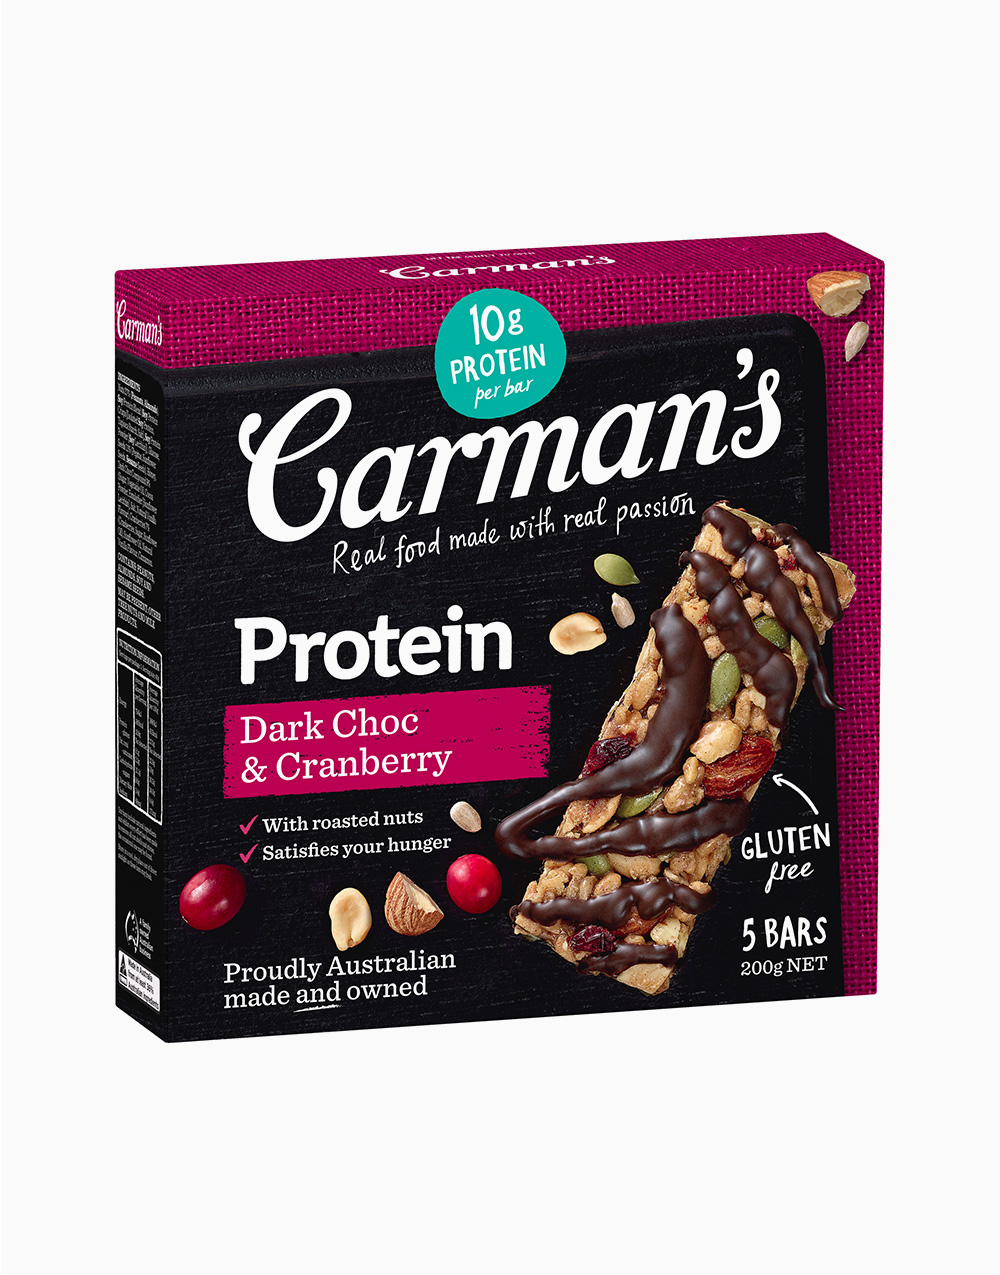 Dark Choco and Cranberry Protein Bar (40g x 5pcs) by Carman's